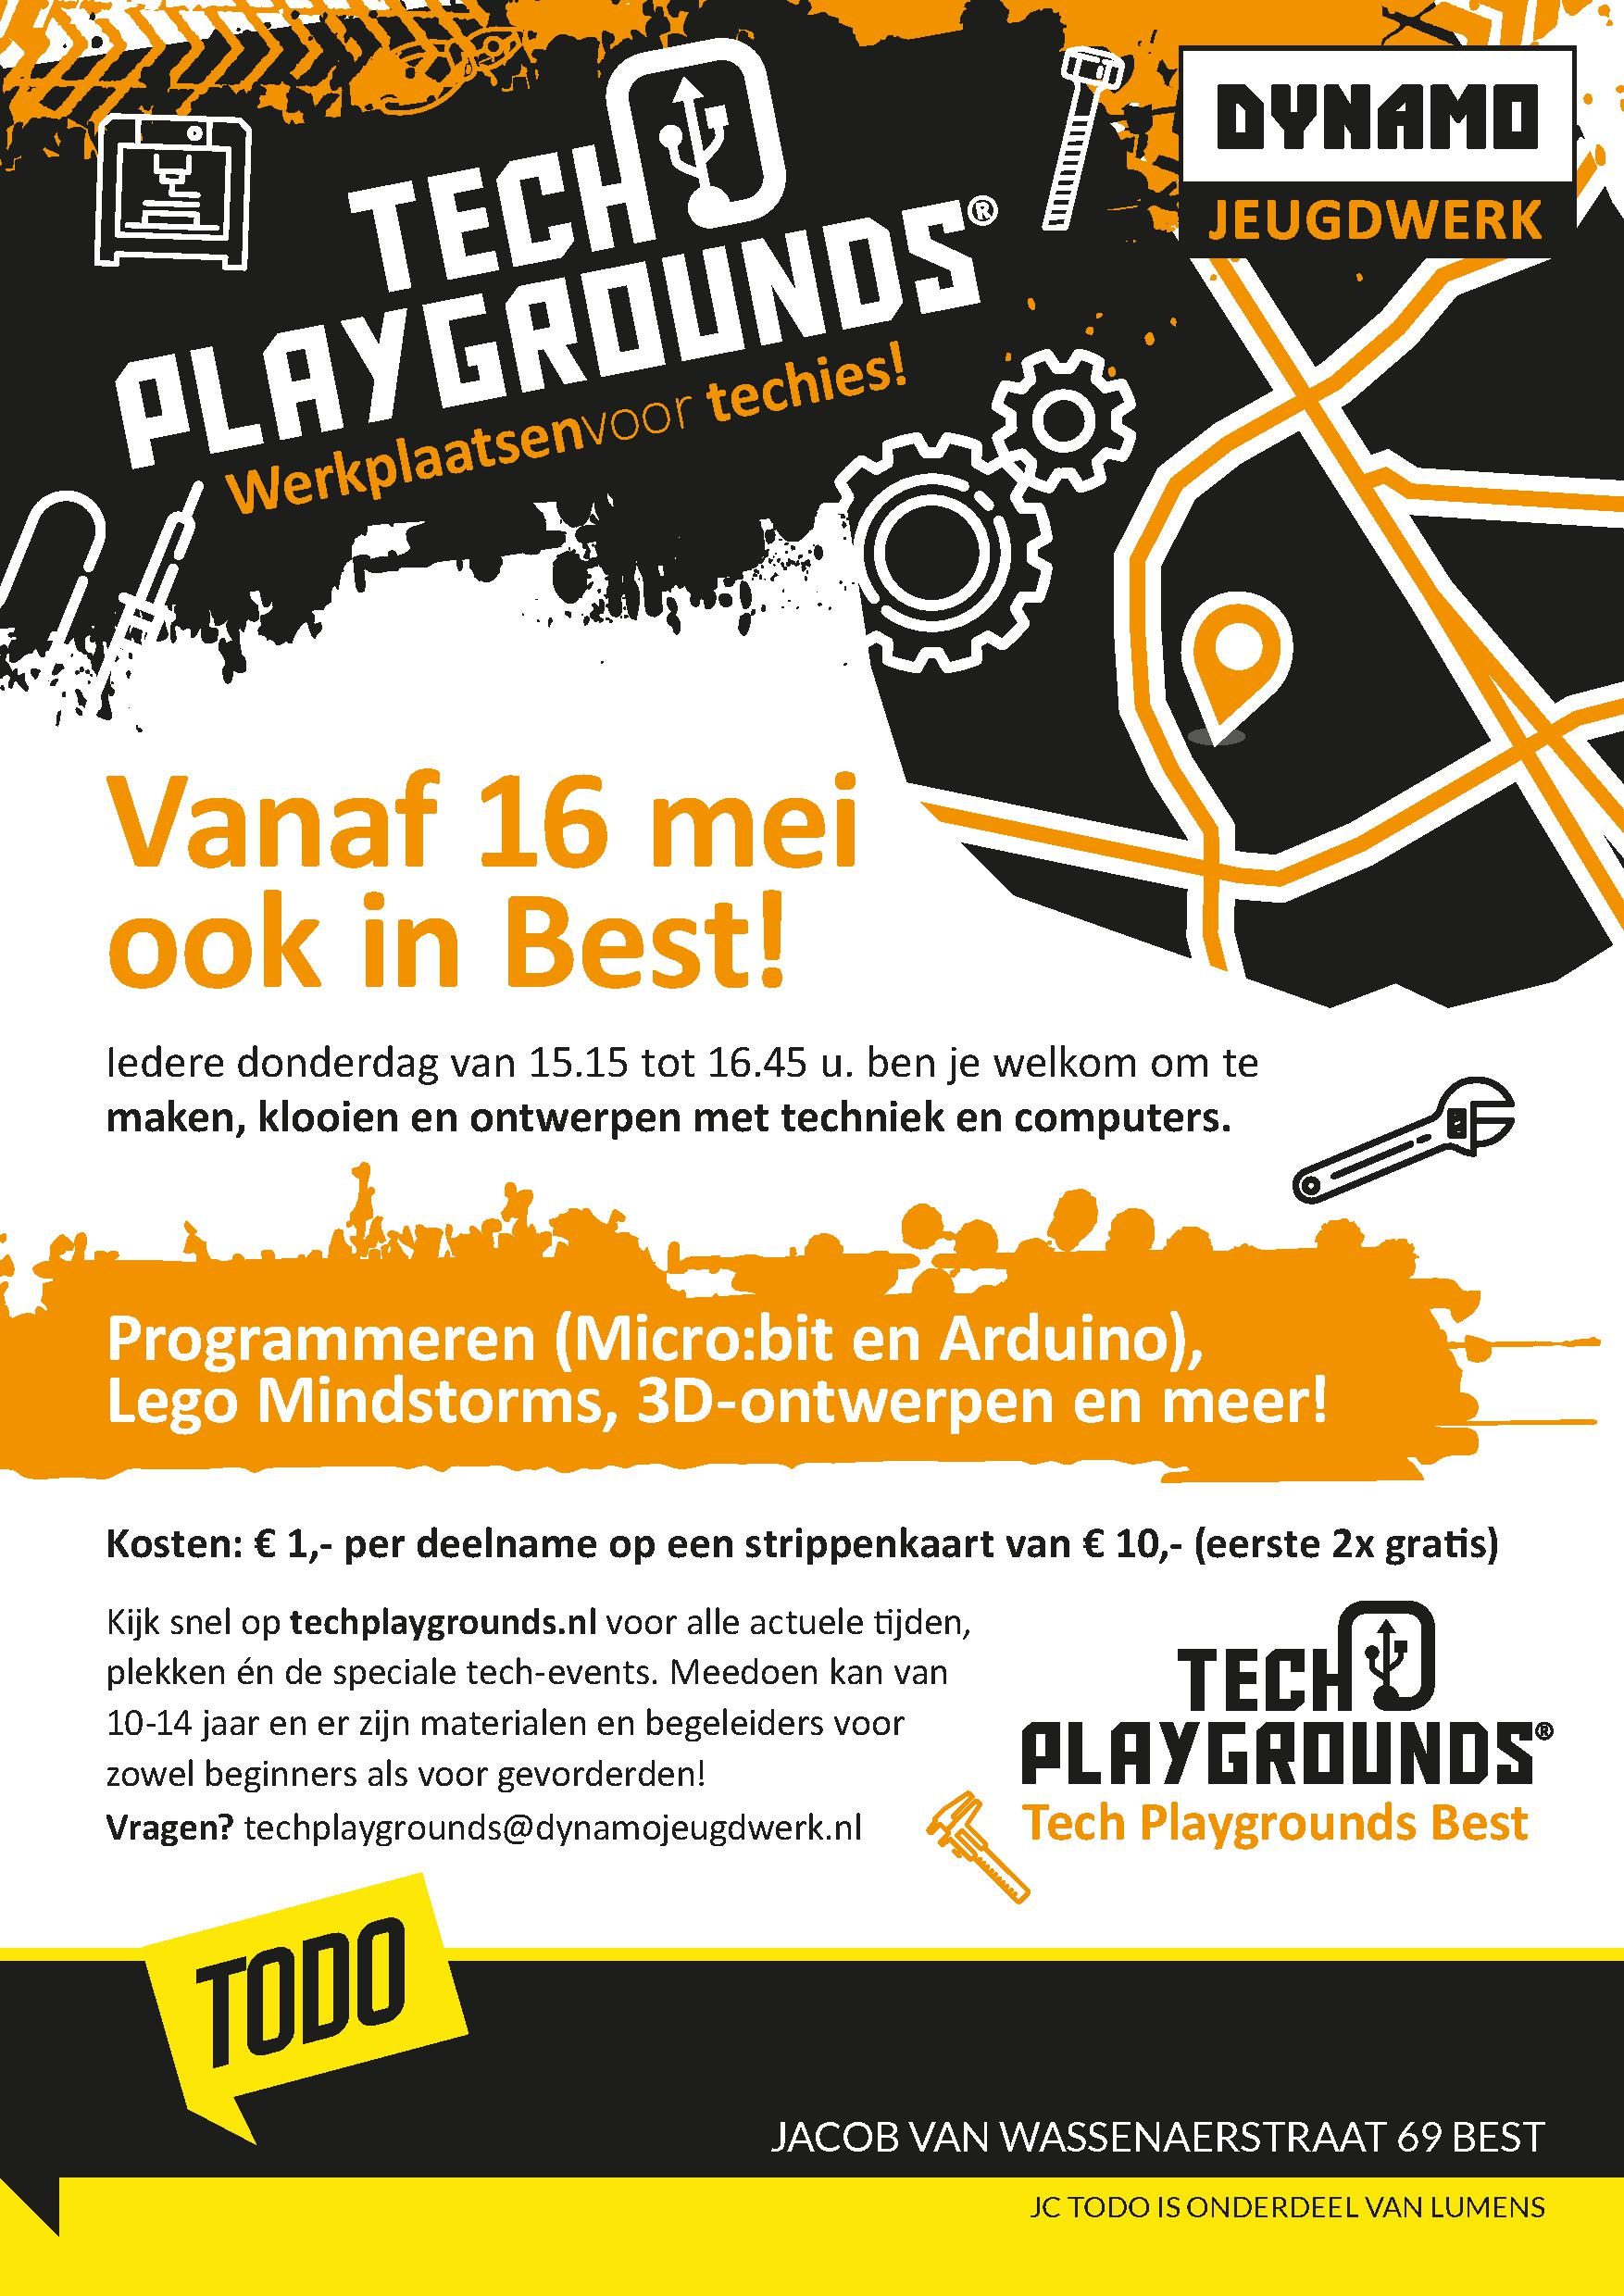 Tech Playgrounds ToDo Best A3 Poster